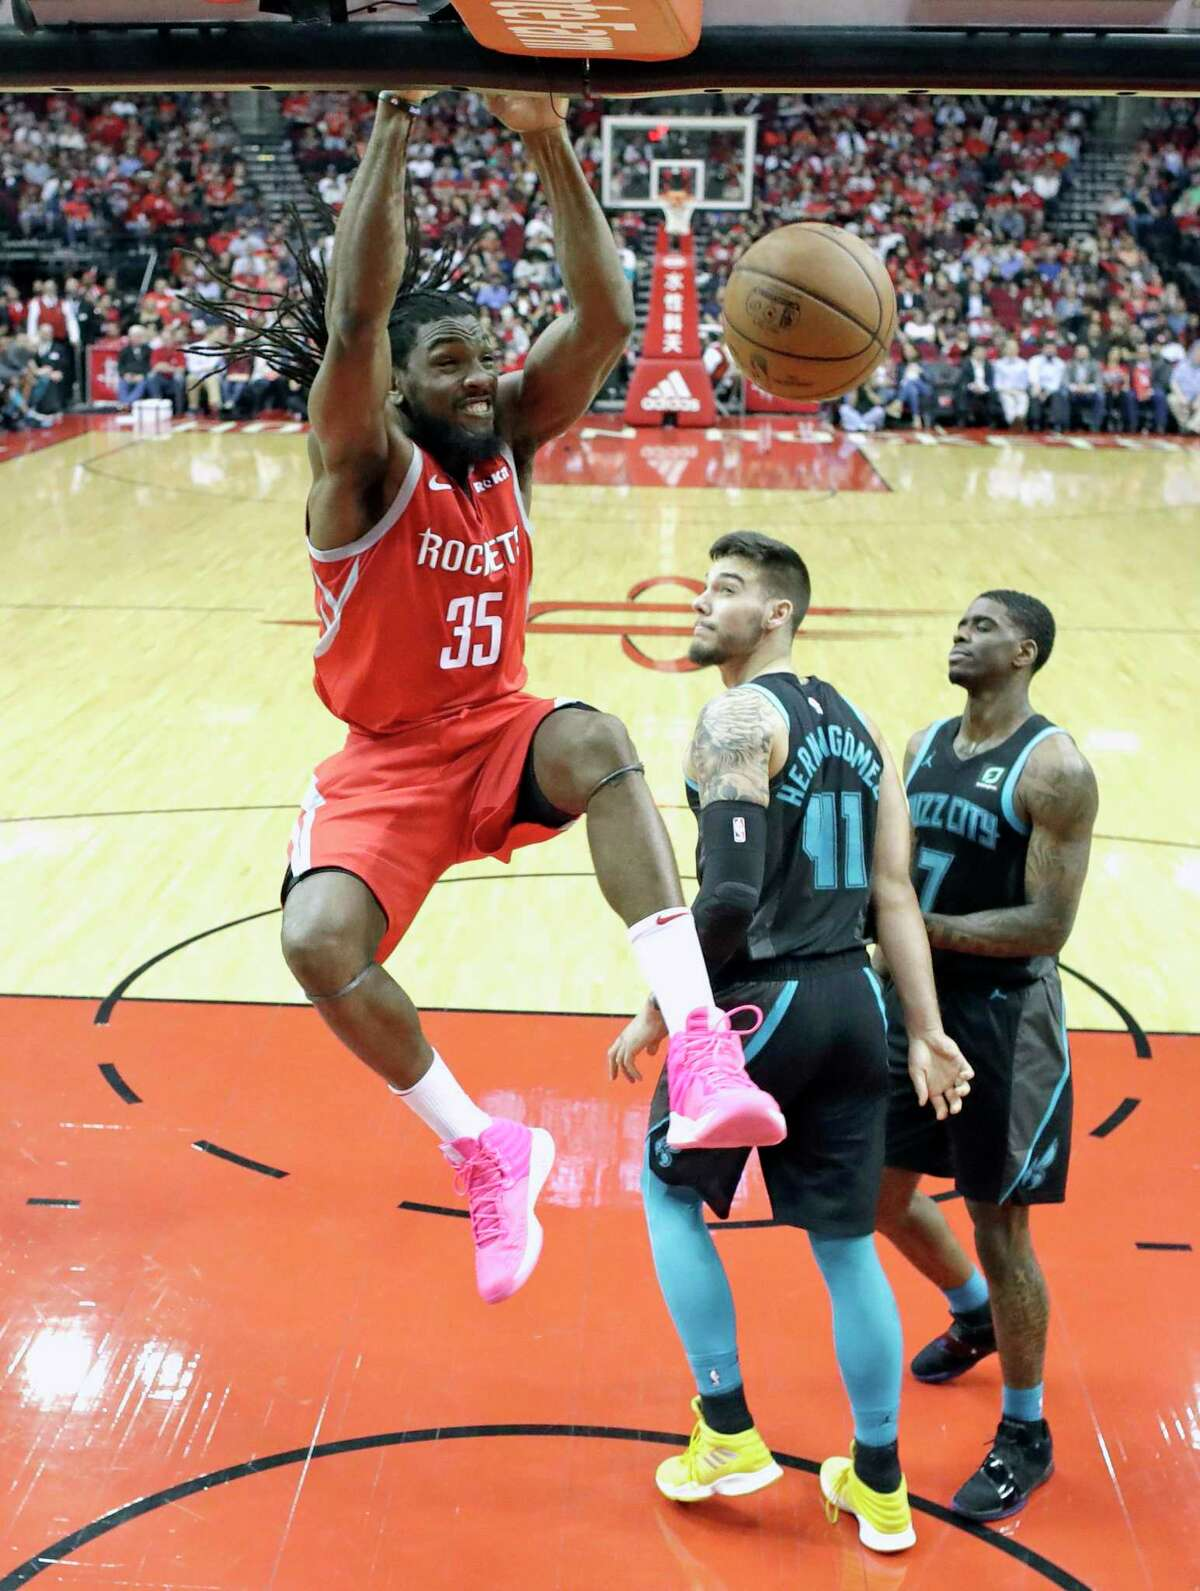 Houston Rockets' Kenneth Faried (35) dunks the ball as Charlotte Hornets' Willy Hernangomez (41) and Dwayne Bacon watch during the first half of an NBA basketball game Monday, March 11, 2019, in Houston. (AP Photo/David J. Phillip)